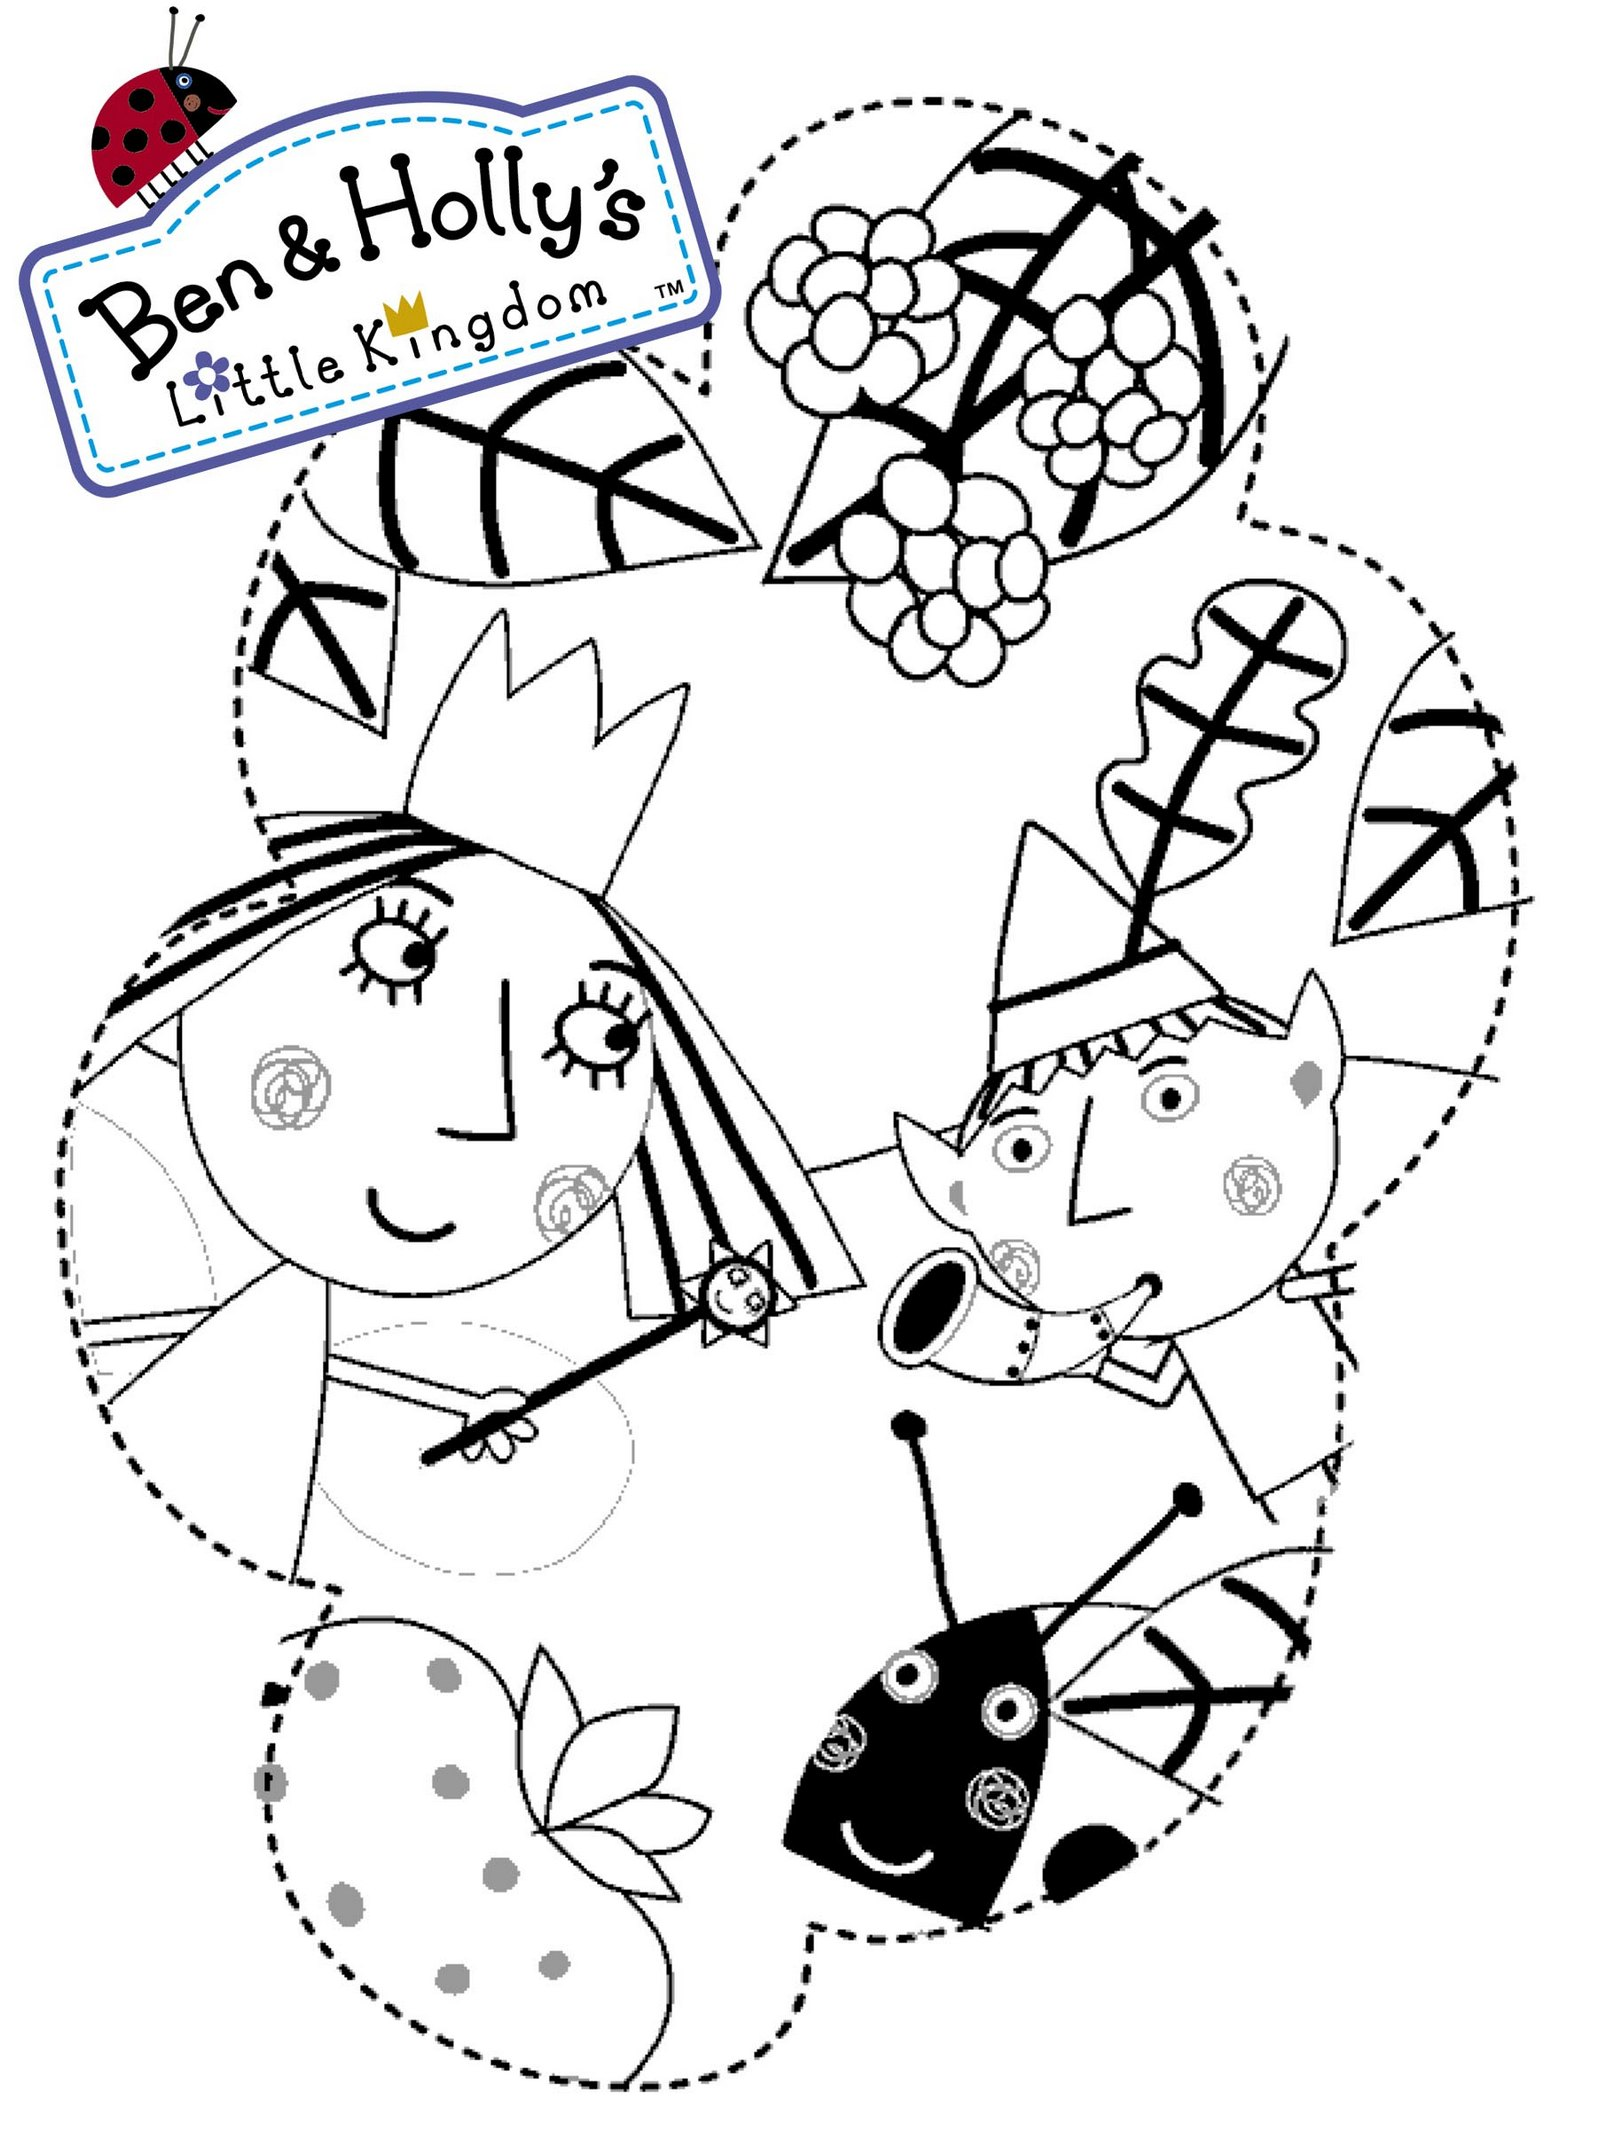 Ben Elf and Princess Holly Coloring Page